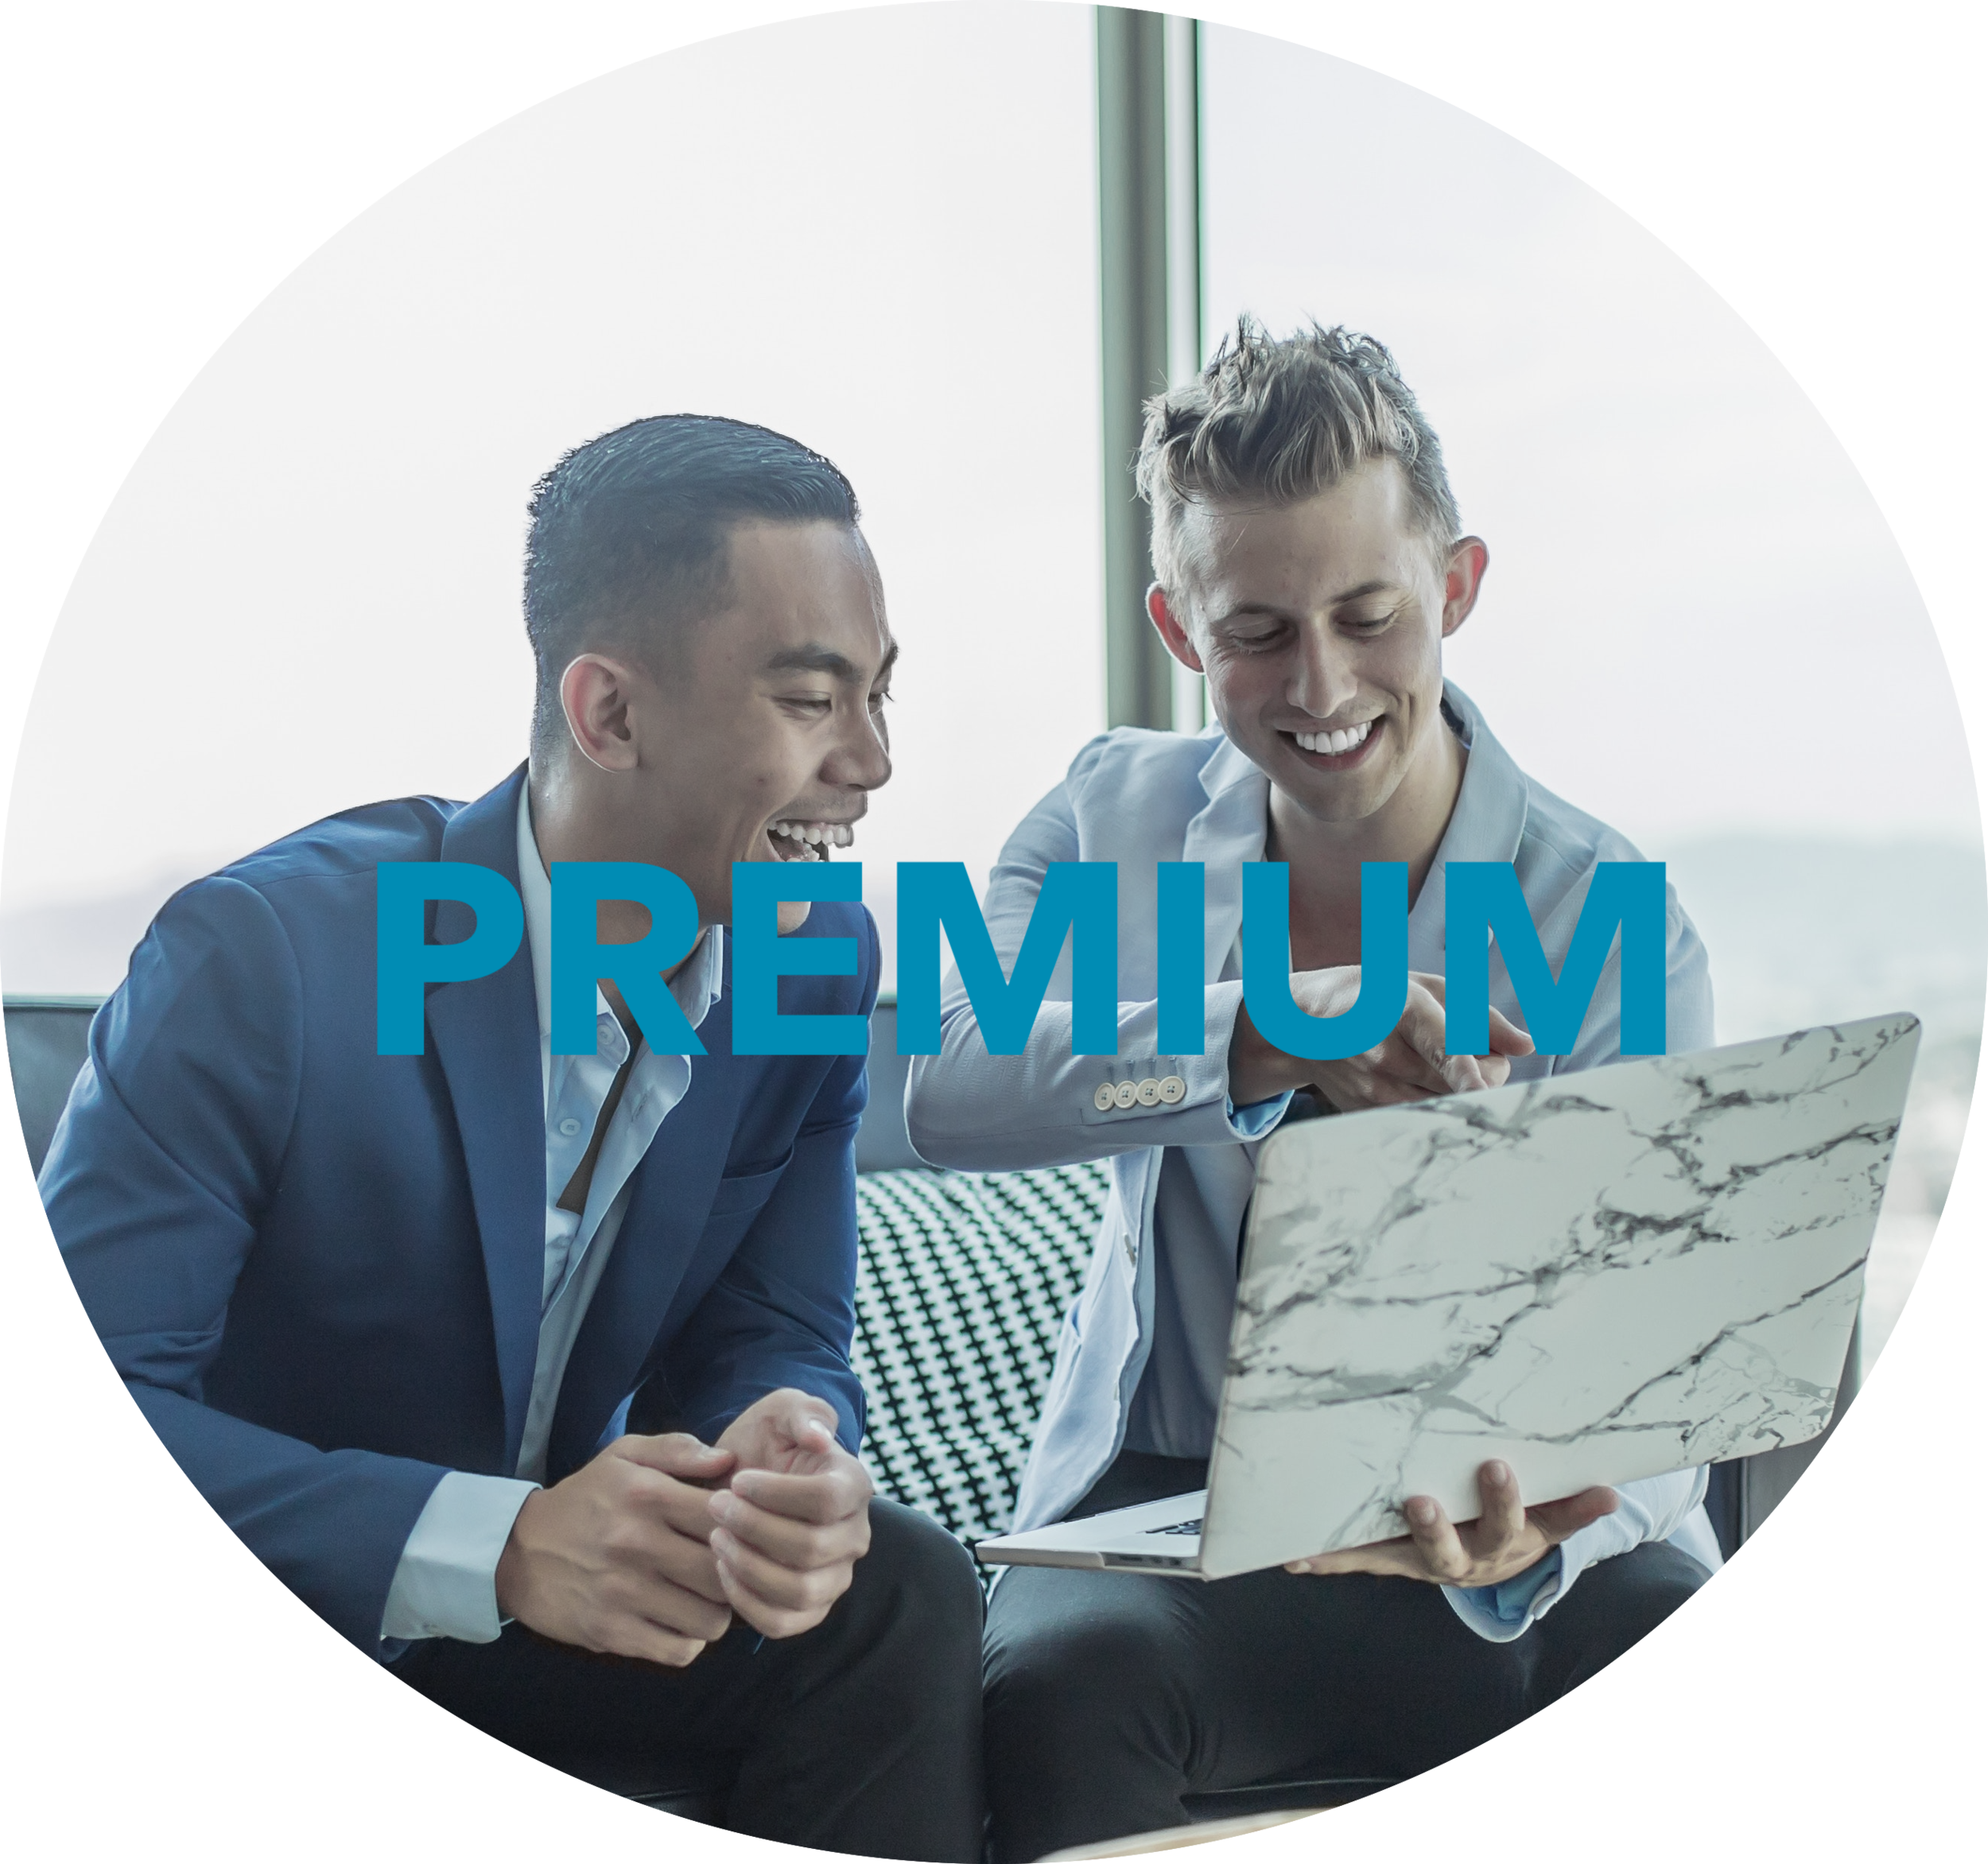 PREMIUM SERVICE - $999 PER MONTH(6 MONTH COMMITMENT)1. 1000 INVITATIONS TO CONNECT, CUSTOM MESSAGES SENT, & PROFILES VISITED2. 200+ CONNECTIONS ADDED TO GROW YOUR IDEAL CLIENT NETWORK.3. 2 MESSAGES TO EVERY PERSON WHO ACCEPTS THE CONNECTION TO FACILITATE A BOOKING4. 2-3 JOB TITLE TARGETS & INDUSTRY TARGETS5. Google Doc CUSTOMIZED HIGH CONVERTING PERSONAL CONTACT MESSAGES MONTHLY6. 45 MINUTE ZOOM CALL CONSULTATION TO HELP OPTIMIZE YOUR PROFILE FOR MAXIMUM PERFORMANCE7. 24/7 VIDEO WALKIE TALKIE COACHING CORRESPONDANCE8. EXTRACTION OF ALL 1ST CONNECTION INFO IN CSV (INCLUDING EMAILS WHEN AVAILABLE)8. $250 OFF LINKEDIN PROFILE OPTIMIZATION9. 1 THOUGHT LEADERSHIP LINKEDIN ARTICLE———————————————————WHY PEOPLE LIKE THIS?1. BUILD CONSISTENT BRAND MOMENTUM2. CREATE MORE FLEXIBILITY IN MARKET STRATEGY AND TARGETING3. DEVELOP A PRESENCE OF THOUGHT LEADERSHIP